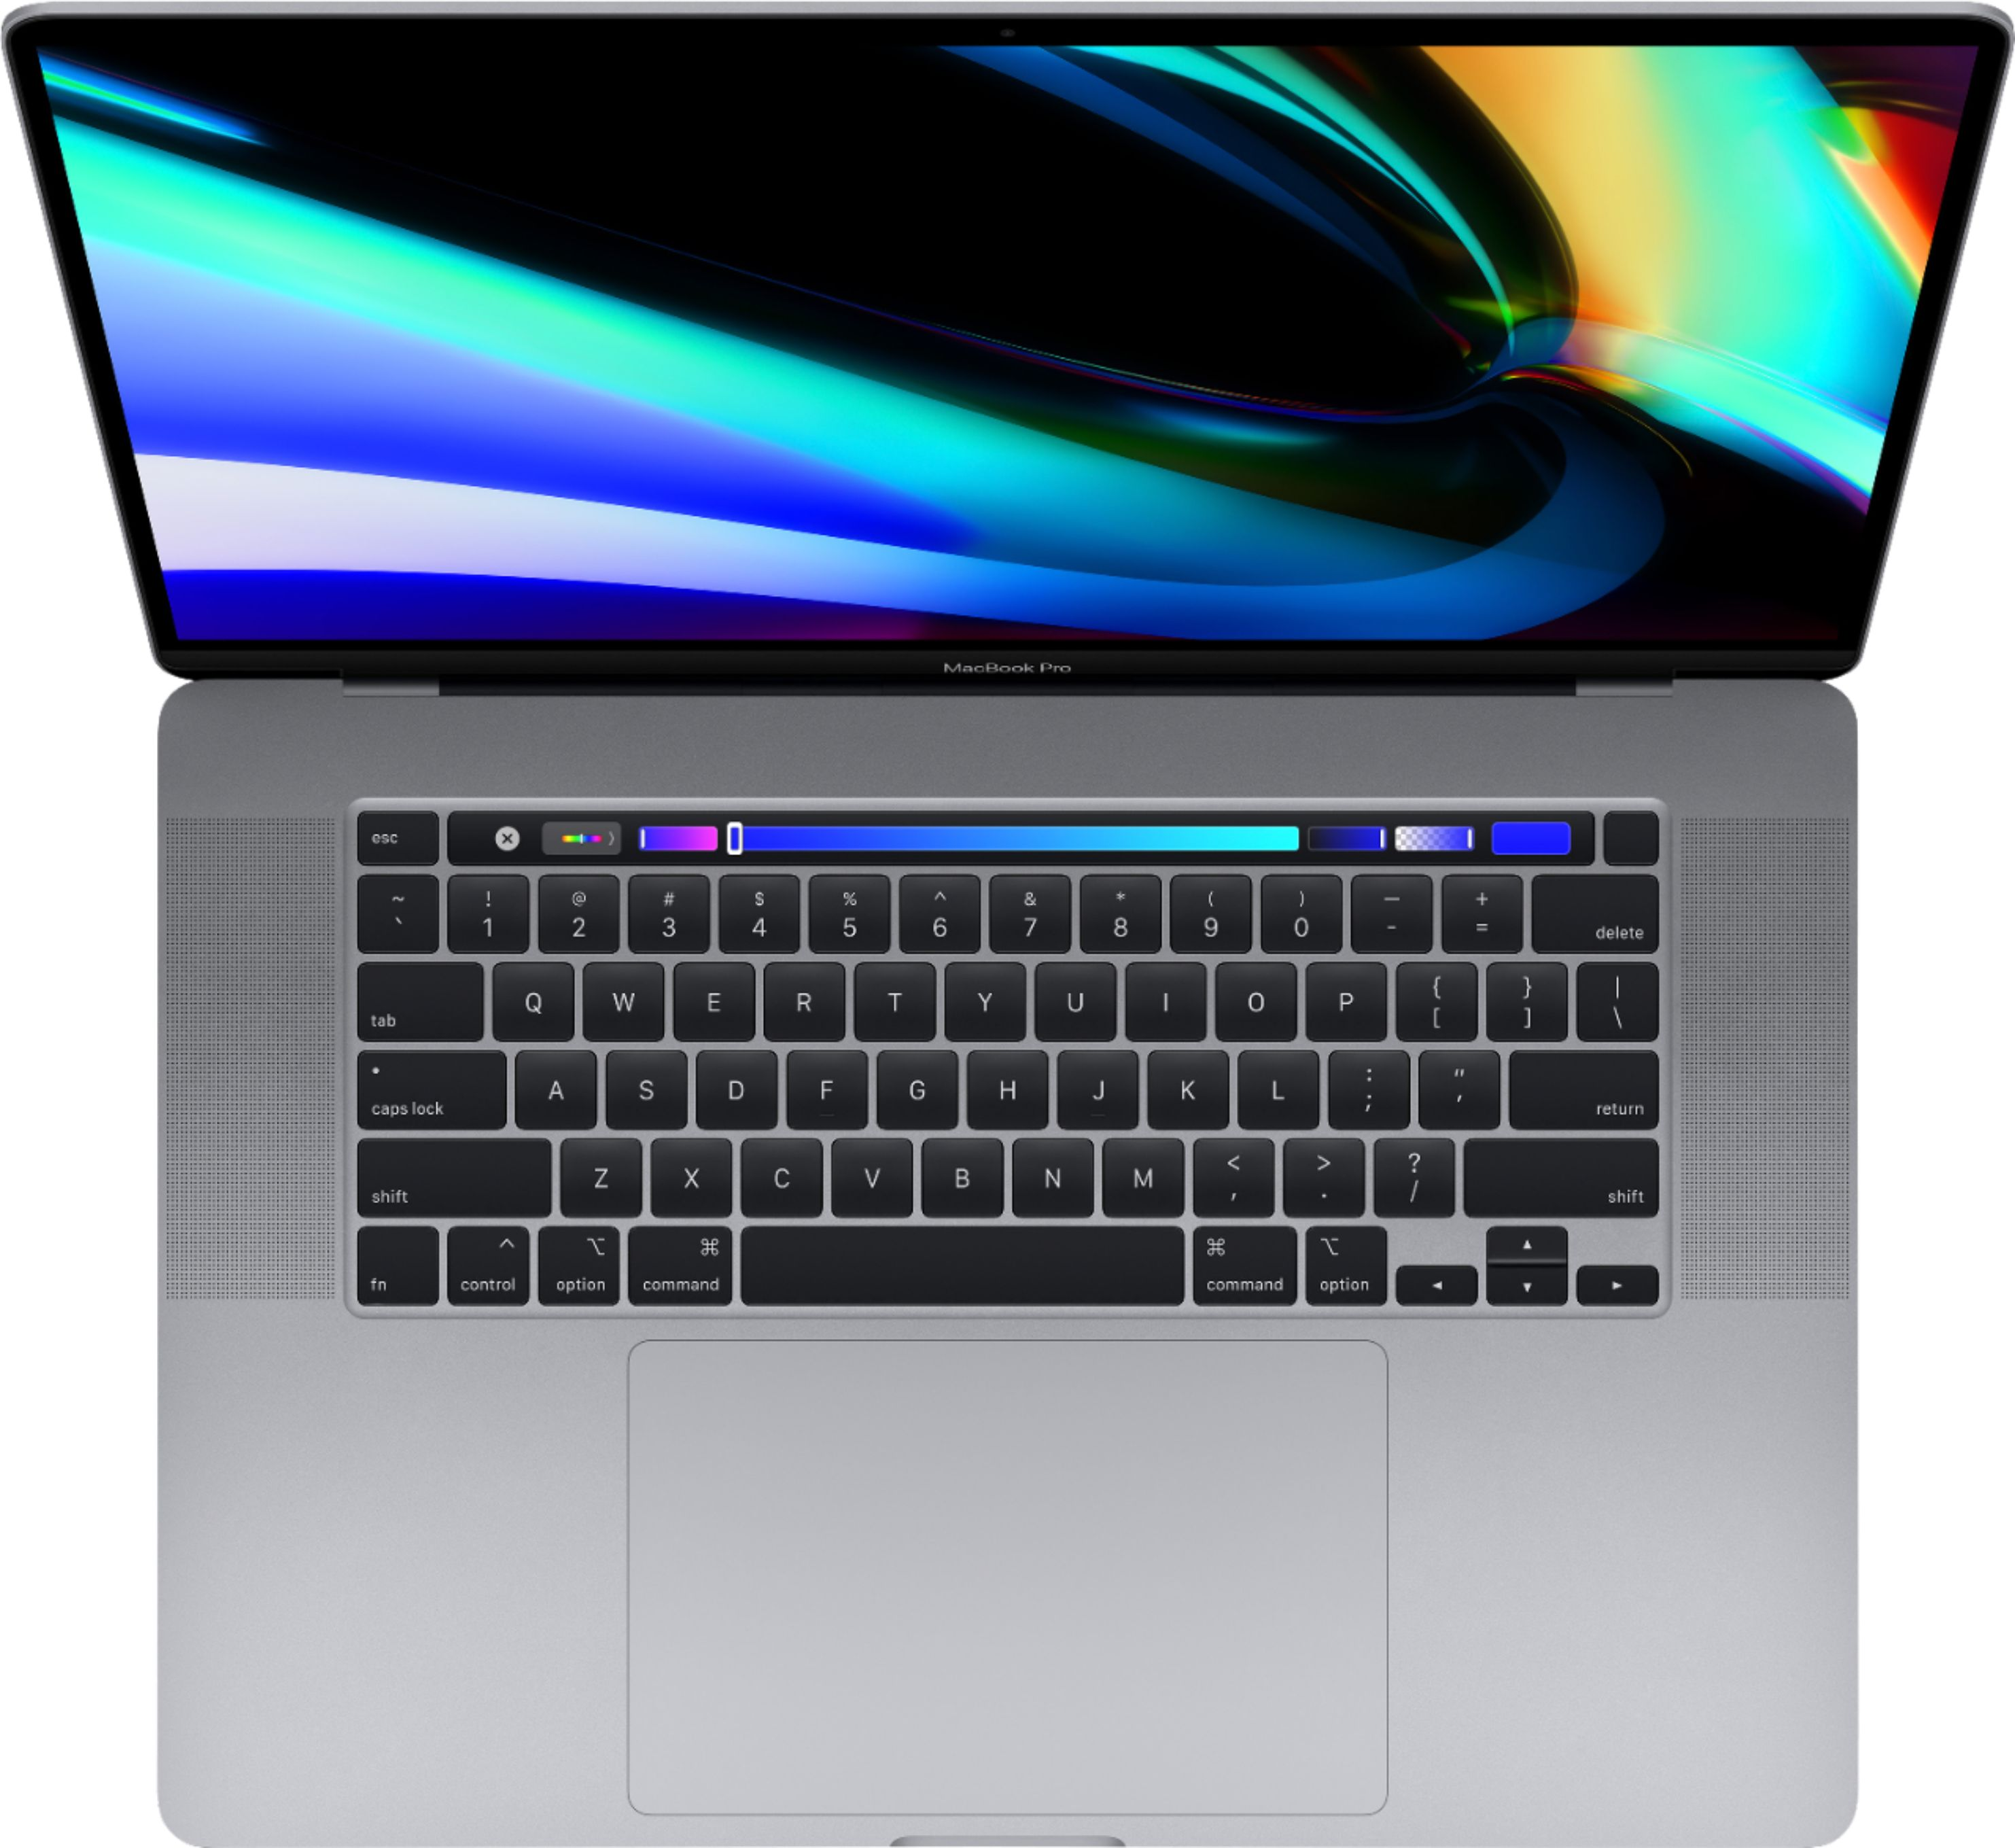 """Alt View Zoom 11. Apple - MacBook Pro - 16"""" Display with Touch Bar - Intel Core i9 - 16GB Memory - AMD Radeon Pro 5500M - 1TB SSD (Latest Model) - Space Gray."""